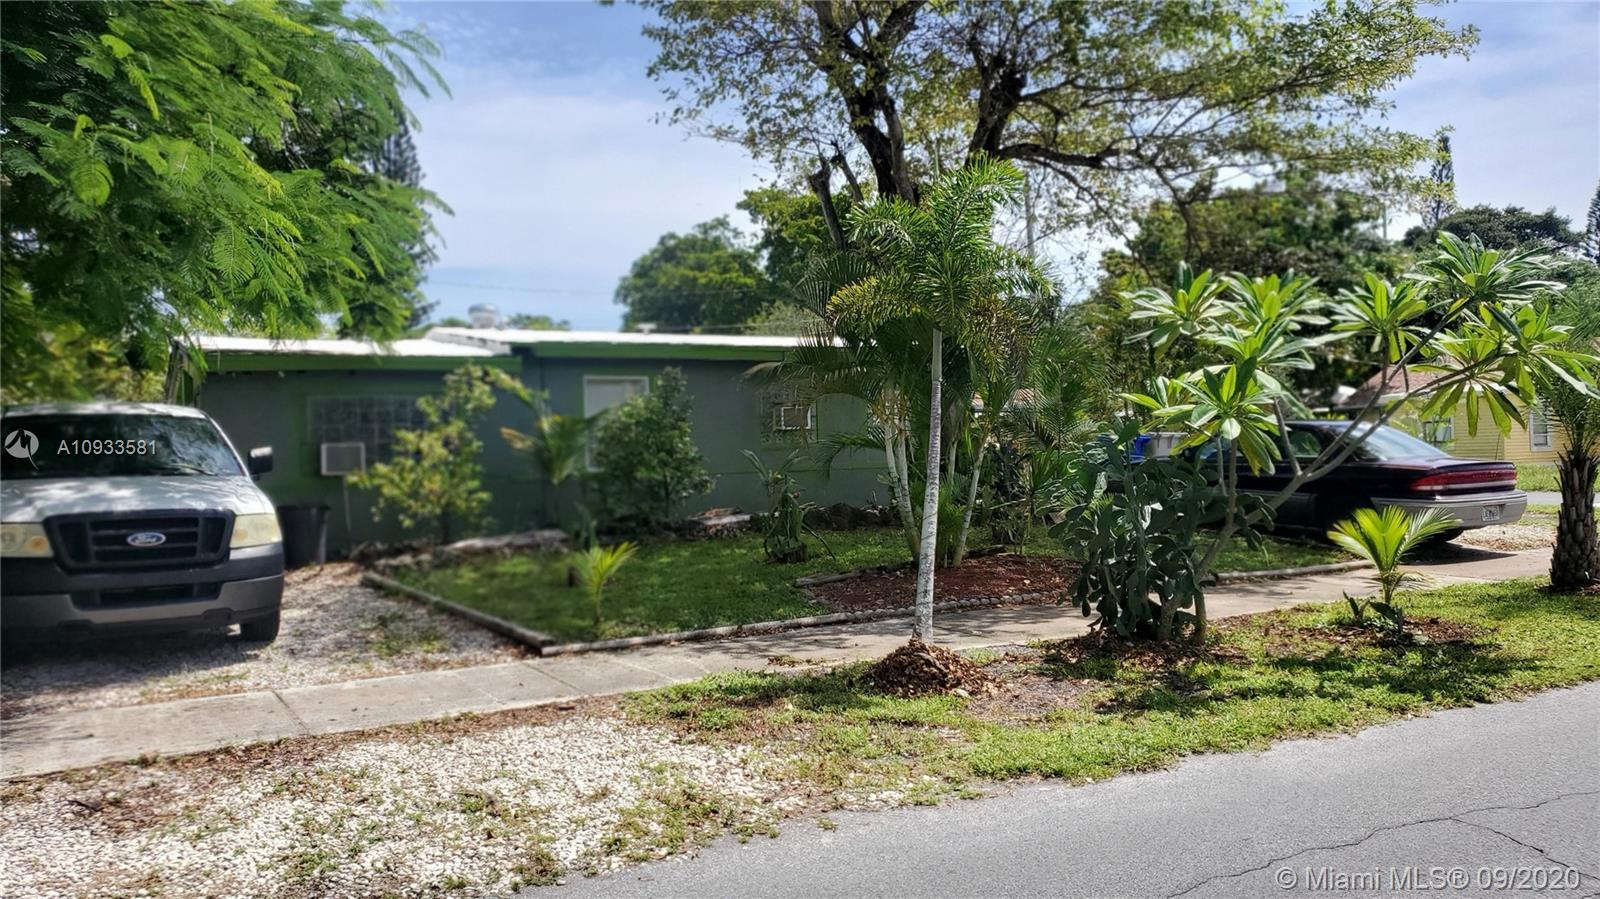 INVESTOR or HANDYMAN Special and PRICED TO SELL!  Home has much potential WITHOUT HOA.  Located on a